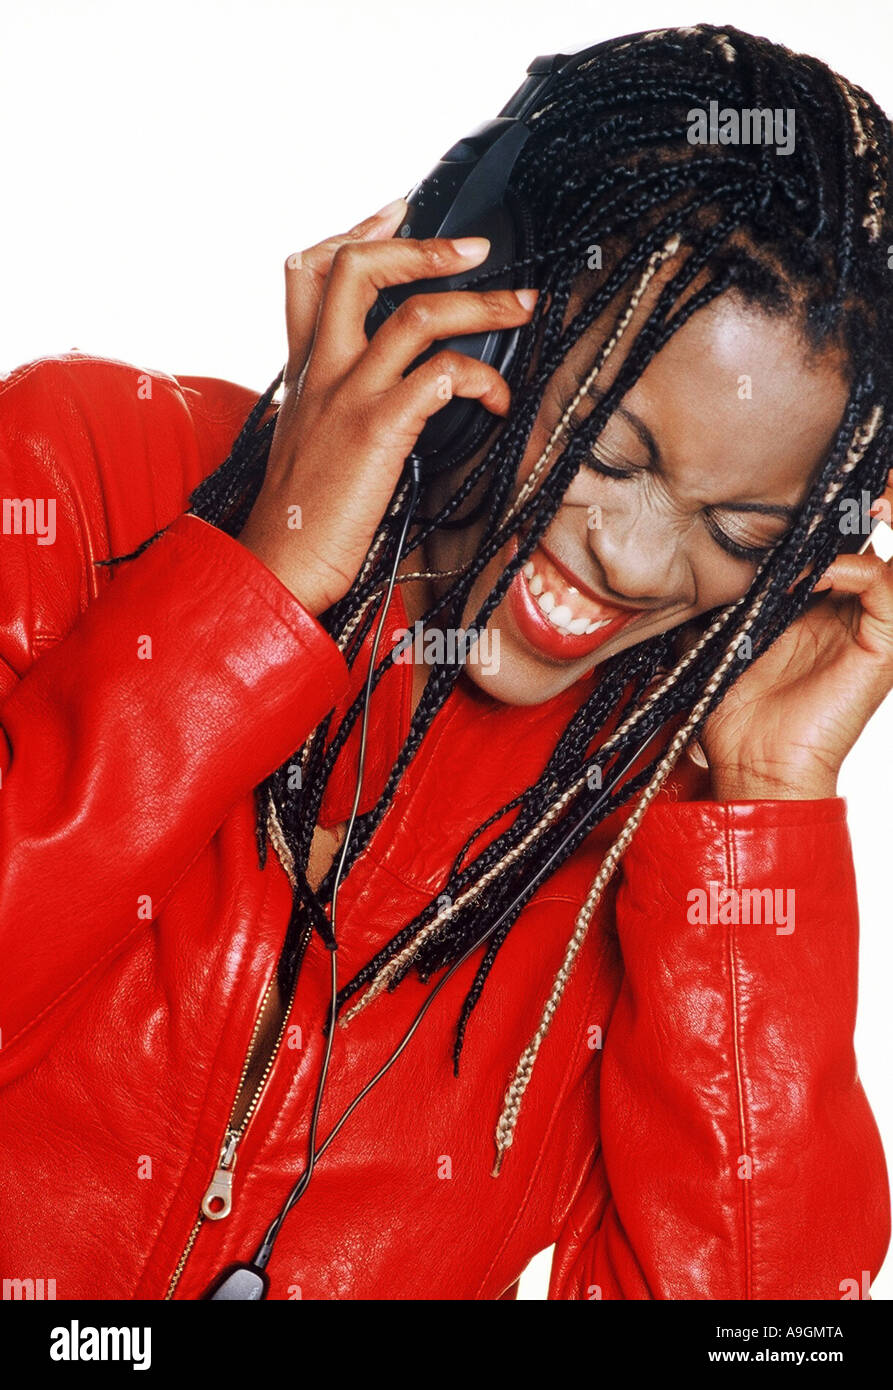 Images 3 Locks Dread Photosamp; Page Alamy 76gbyYvf